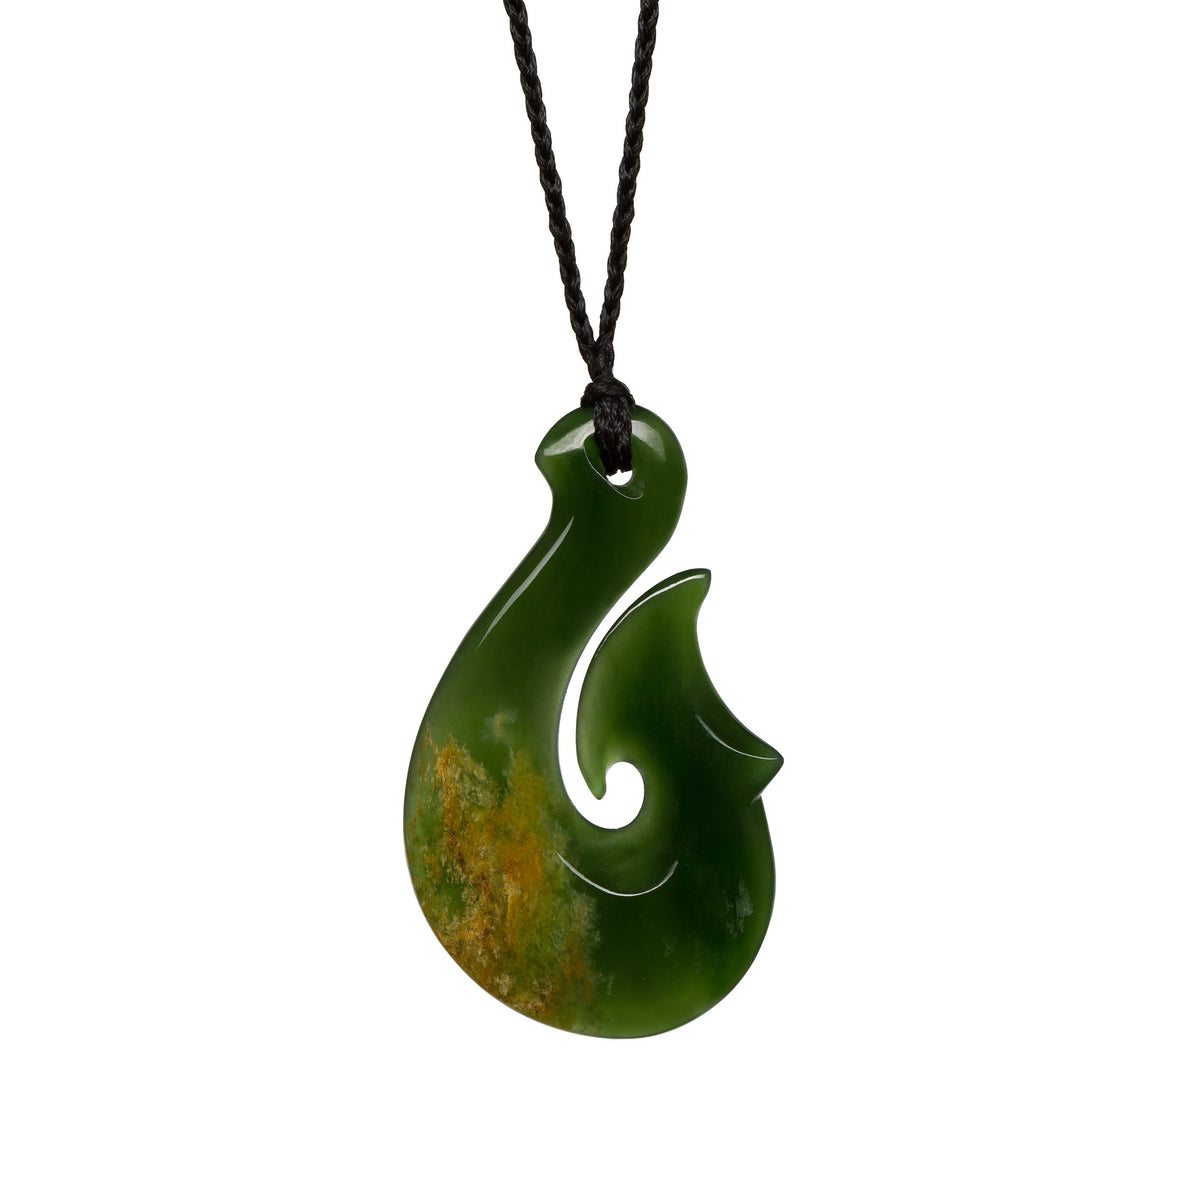 53mm x 32mm / New Zealand Pounamu // LUHOOK648P-1